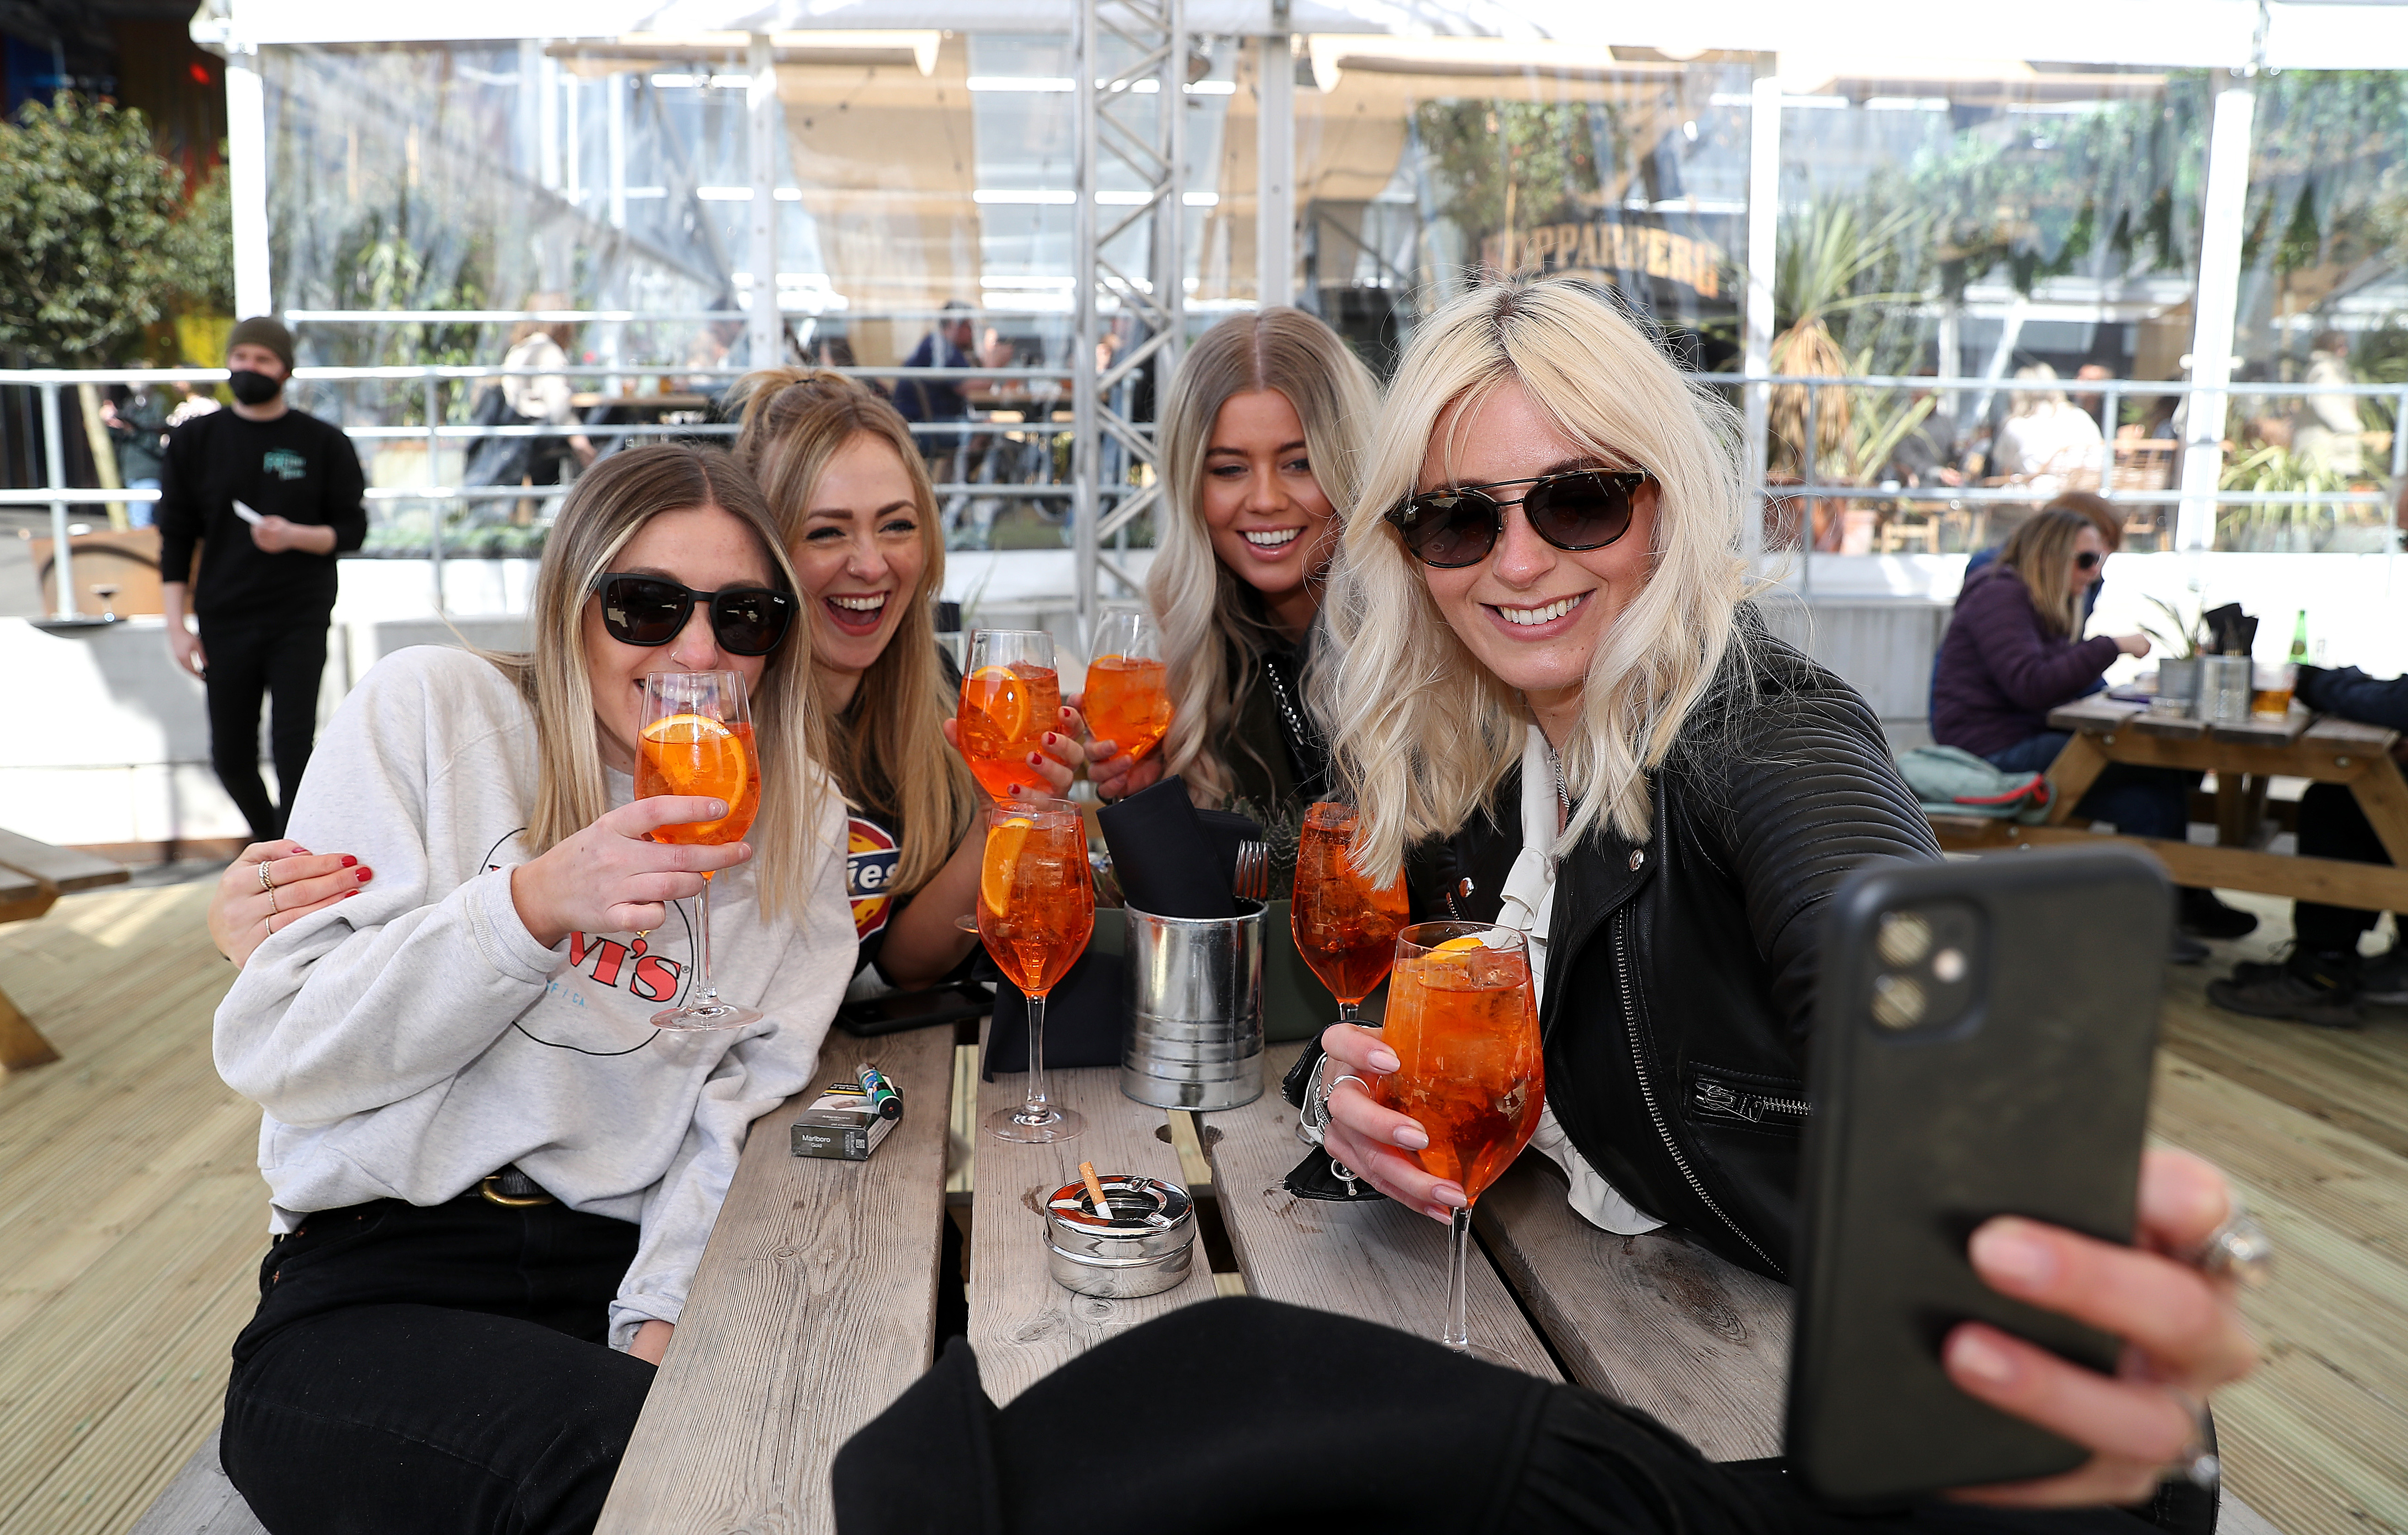 <p>(Left to right) Sara Barnes, Katie Davies, Amber Harrison and Georgia Noon take a selfie as they enjoy a drink at the Escape to Freight Island bar in Depot Island, Manchester, as England takes another step back towards normality with the further easing of lockdown restrictions. Picture date: Monday April 12, 2021.</p>